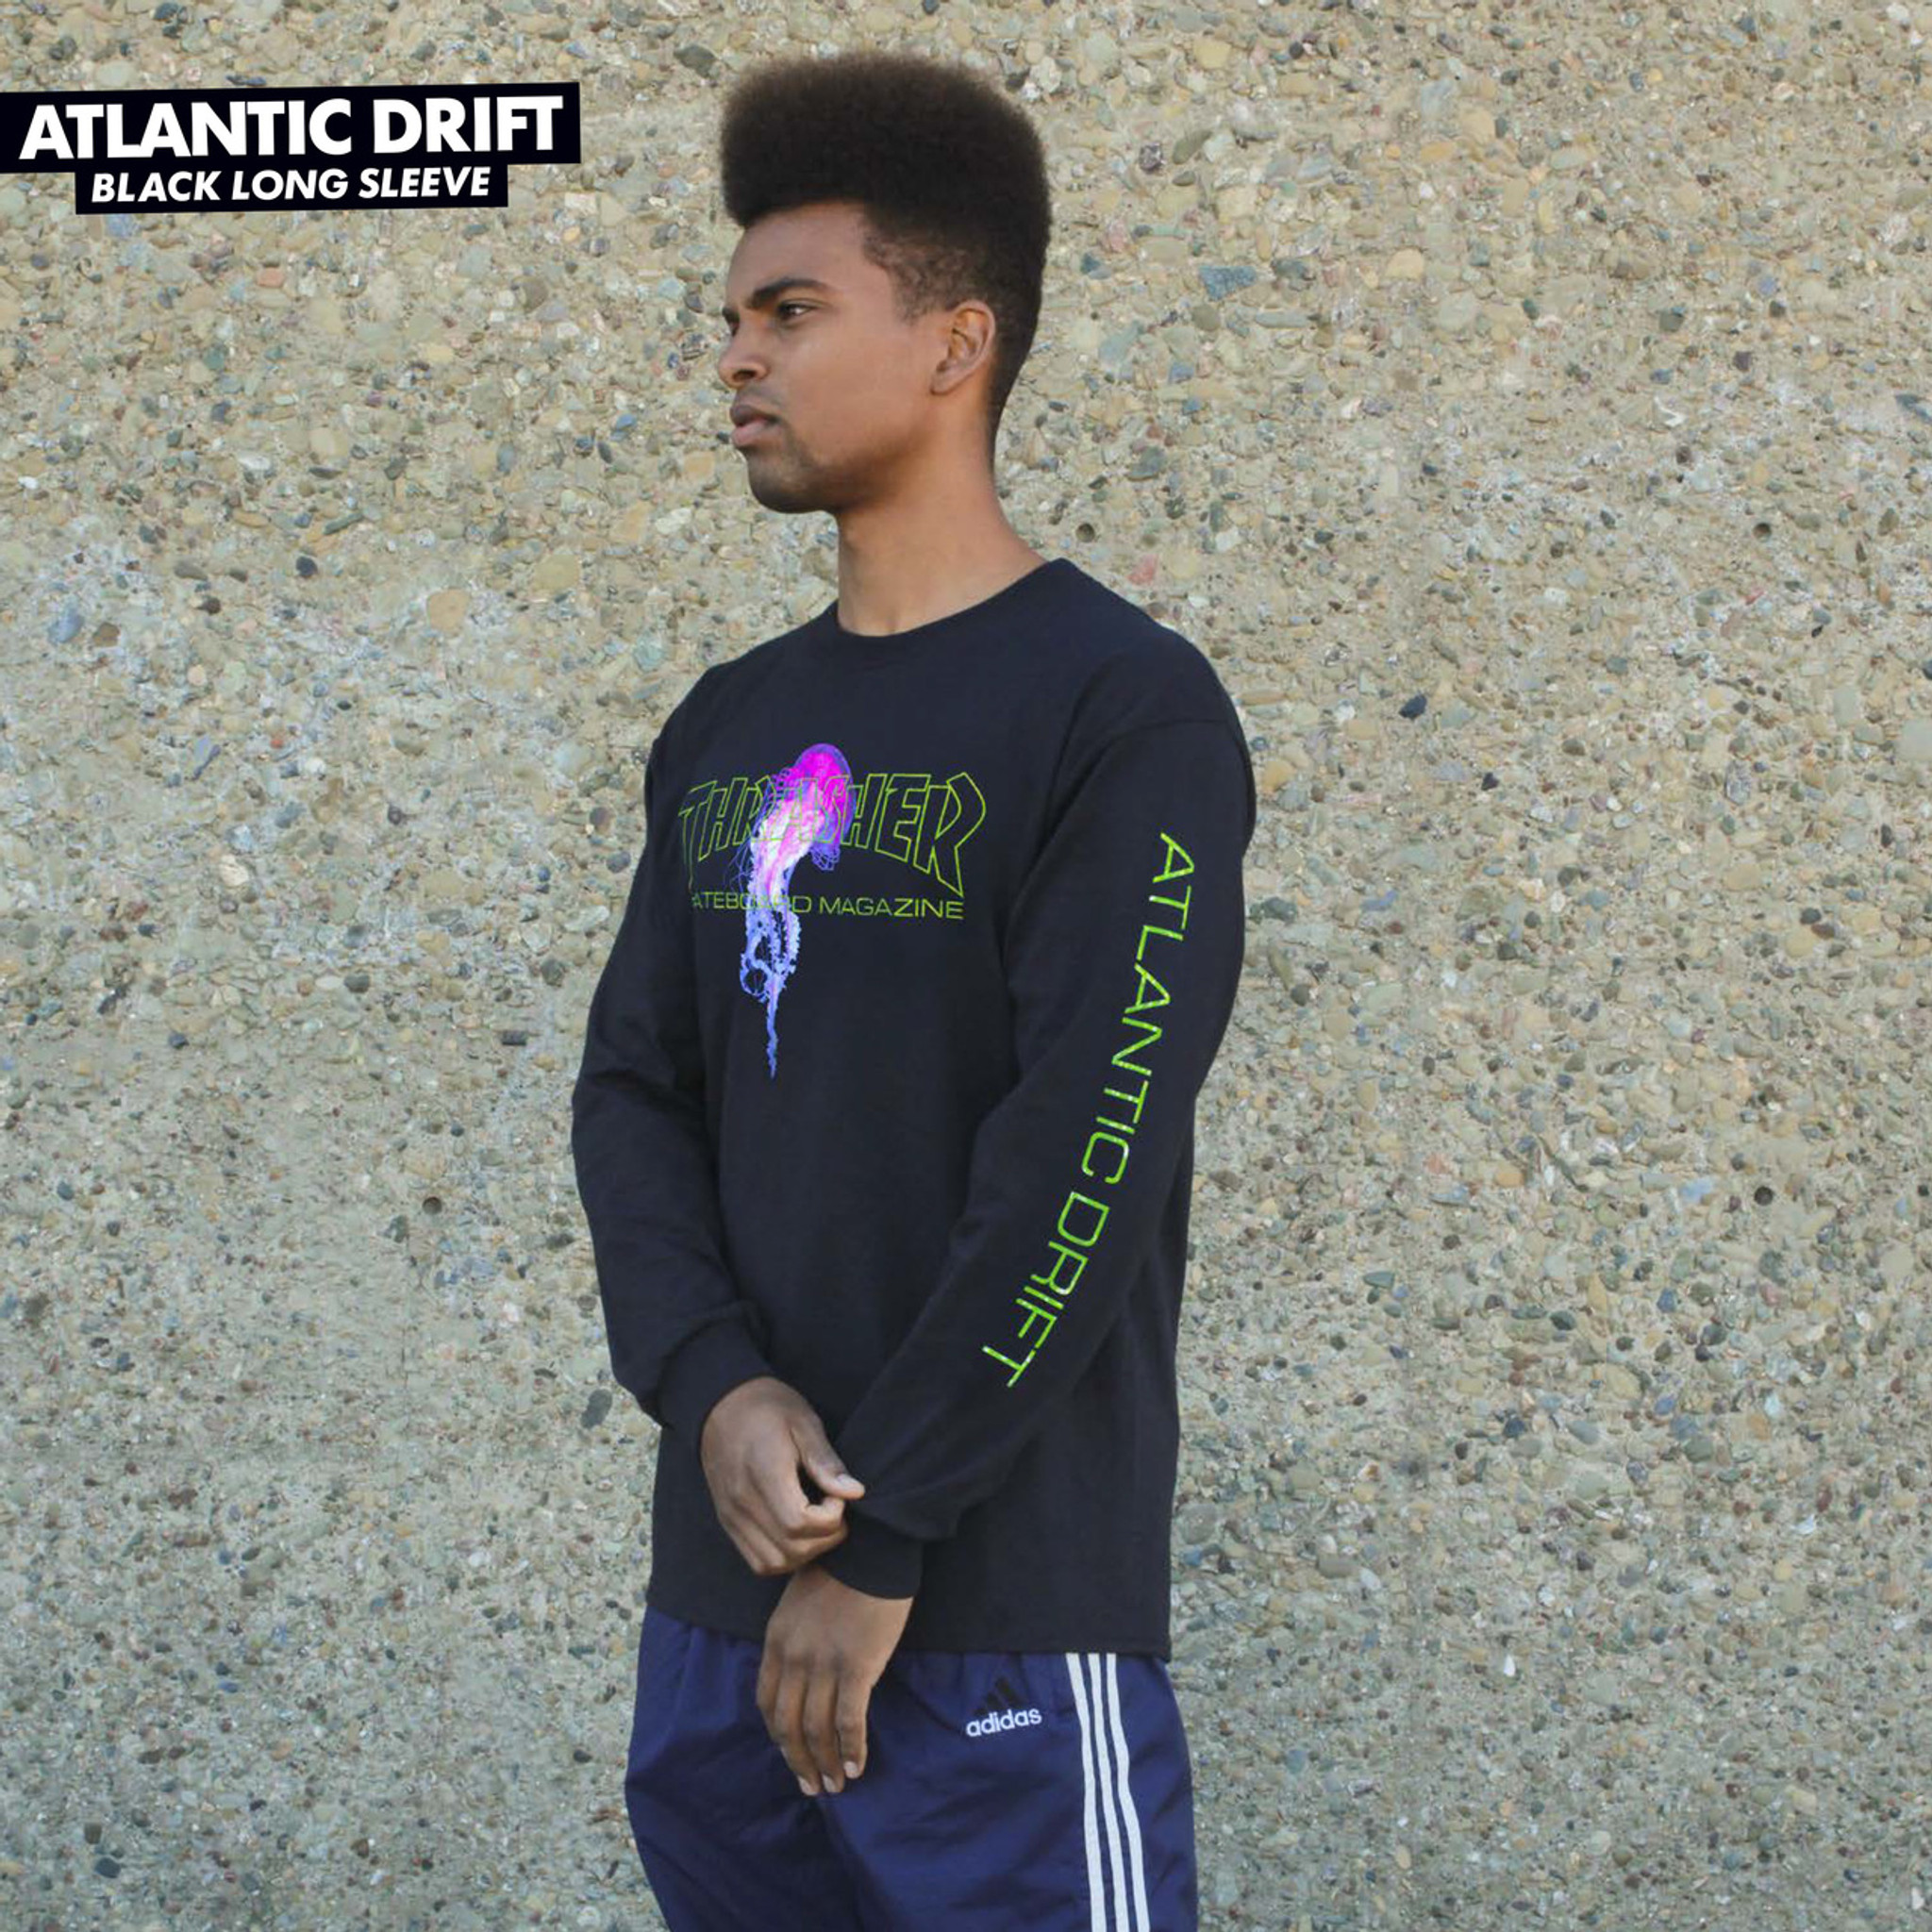 48cd467073ab Thrasher Skate Mag Atlantic Drift Long Sleeve Shirt Black